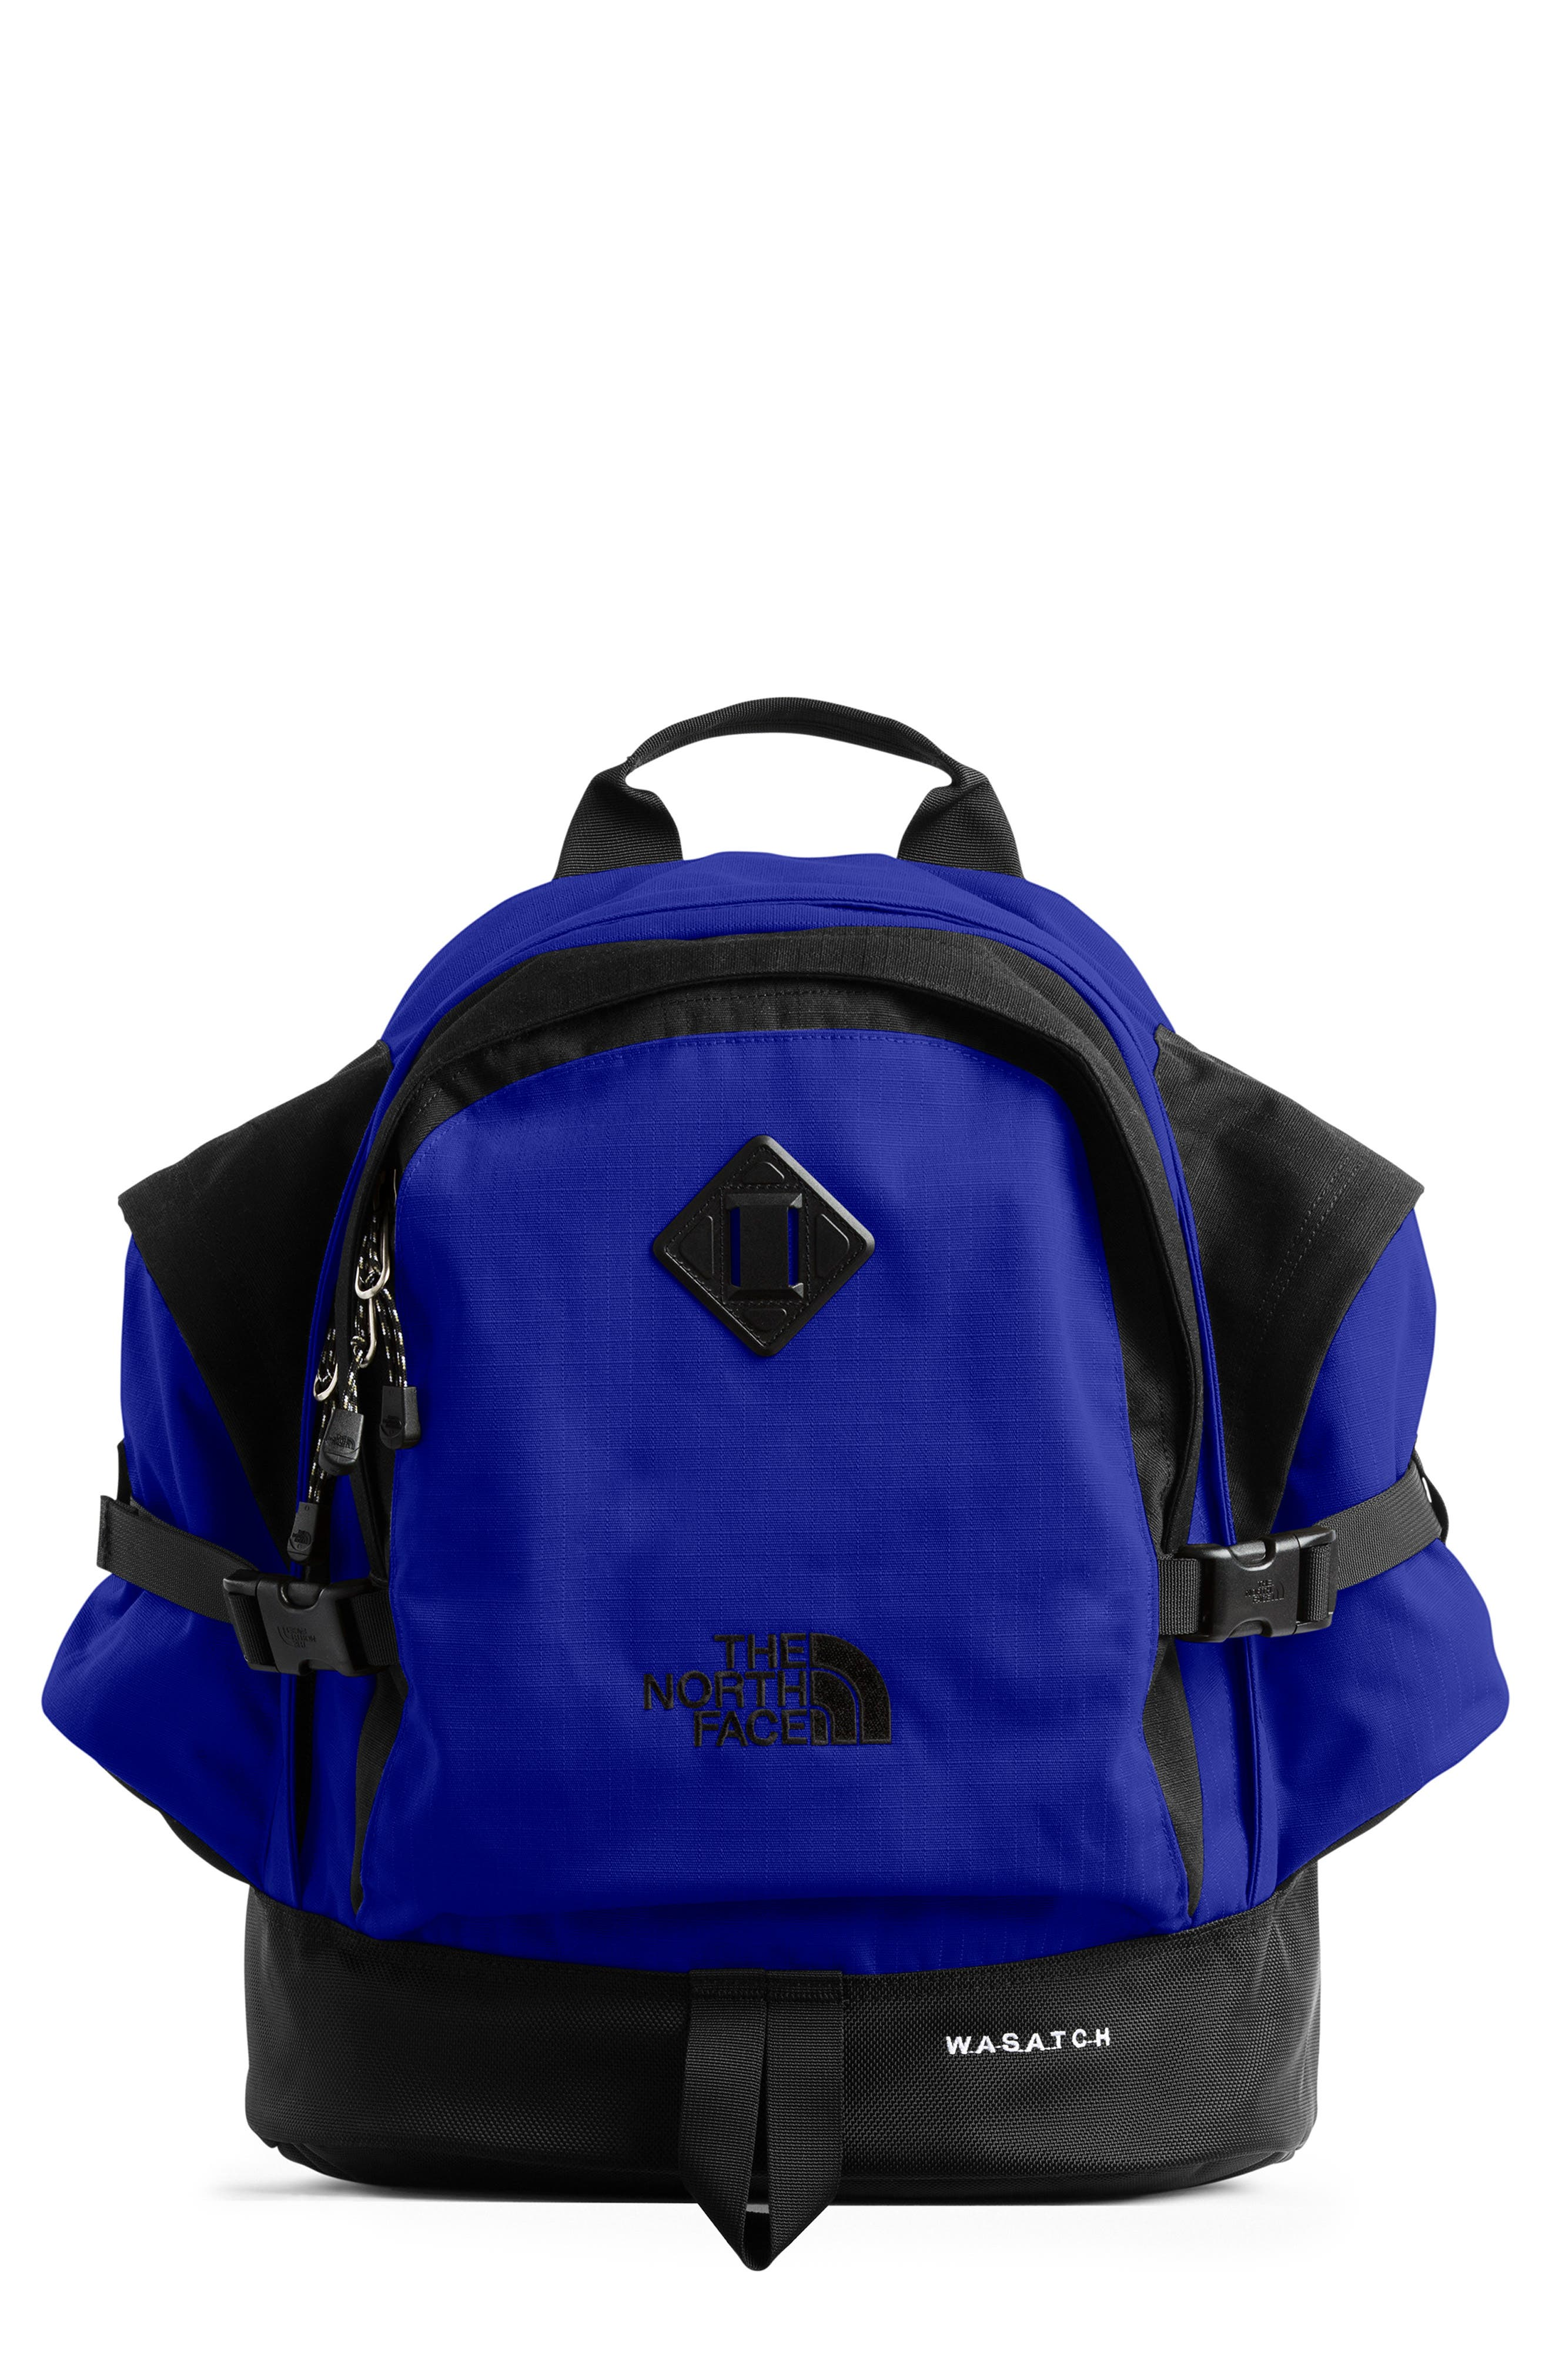 Wasatch Reissue Backpack, Main, color, AZTEC BLUE